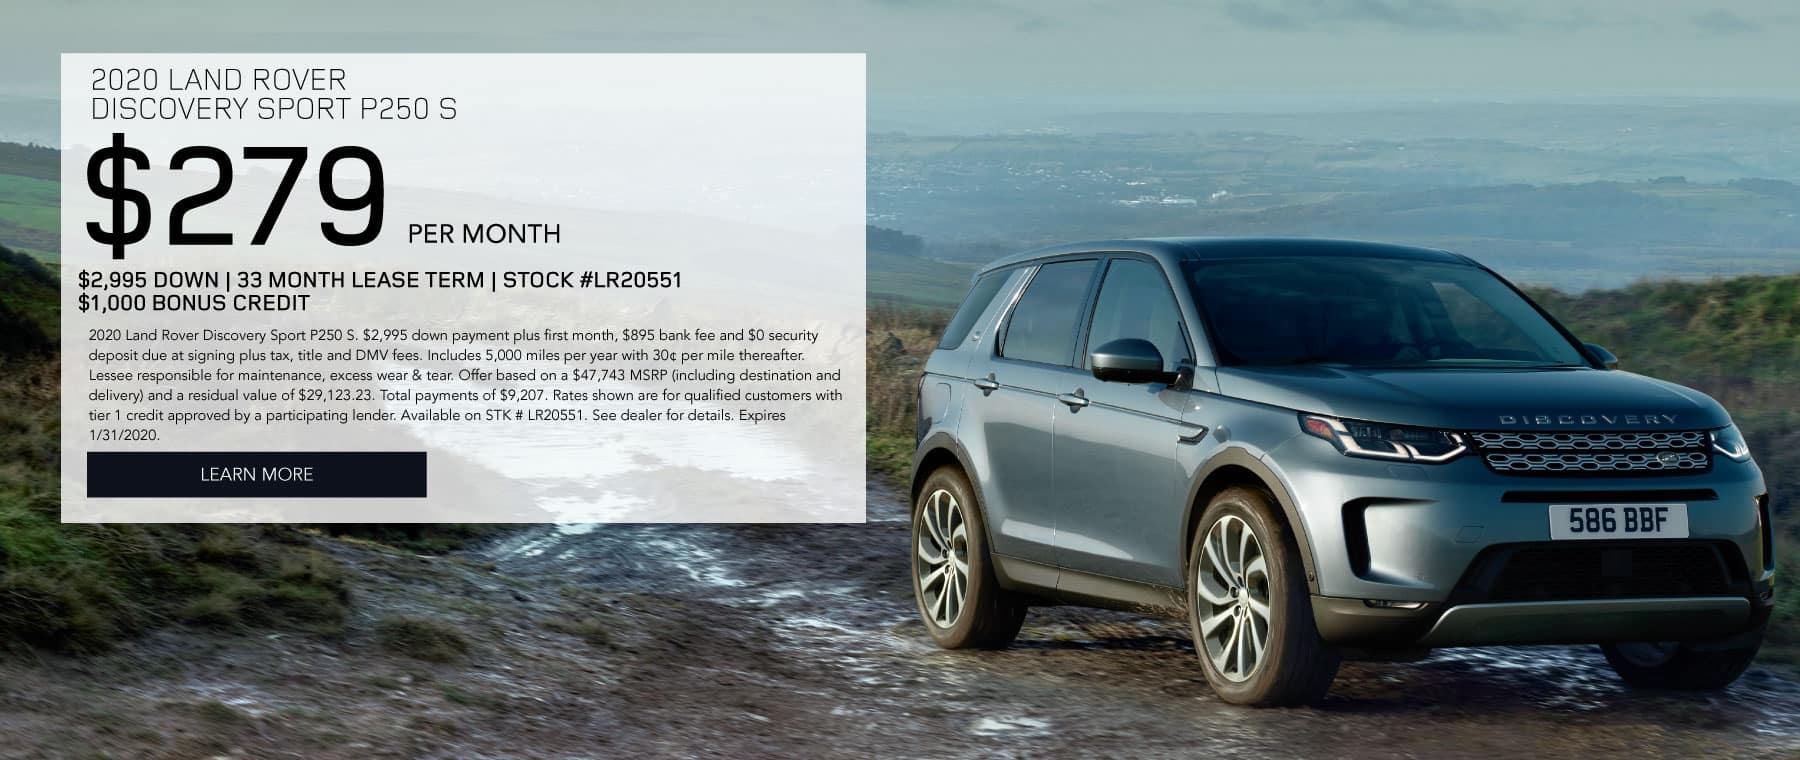 2020 LAND ROVER DISCOVERY SPORT P250 S $279 PER MONTH $2,995 DOWN 33 MONTH LEASE TERM STOCK #LR20551 $1,000 BONUS CREDIT 2020 Land Rover Discovery Sport P250 S. $2,995 down payment plus first month, $895 bank fee and $0 security deposit due at signing plus tax, title and DMV fees. Includes 5,000 miles per year with 30¢ per mile thereafter. Lessee responsible for maintenance, excess wear & tear. Offer based on a $47,743 MSRP (including destination and delivery) and a residual value of $29,123.23. Total payments of $9,207. Rates shown are for qualified customers with tier 1 credit approved by a participating lender. Available on STK # LR20551. See dealer for details. Expires 1/31/2020. Click to learn more. Blue Discovery Sport on dirt road with hills in the background.